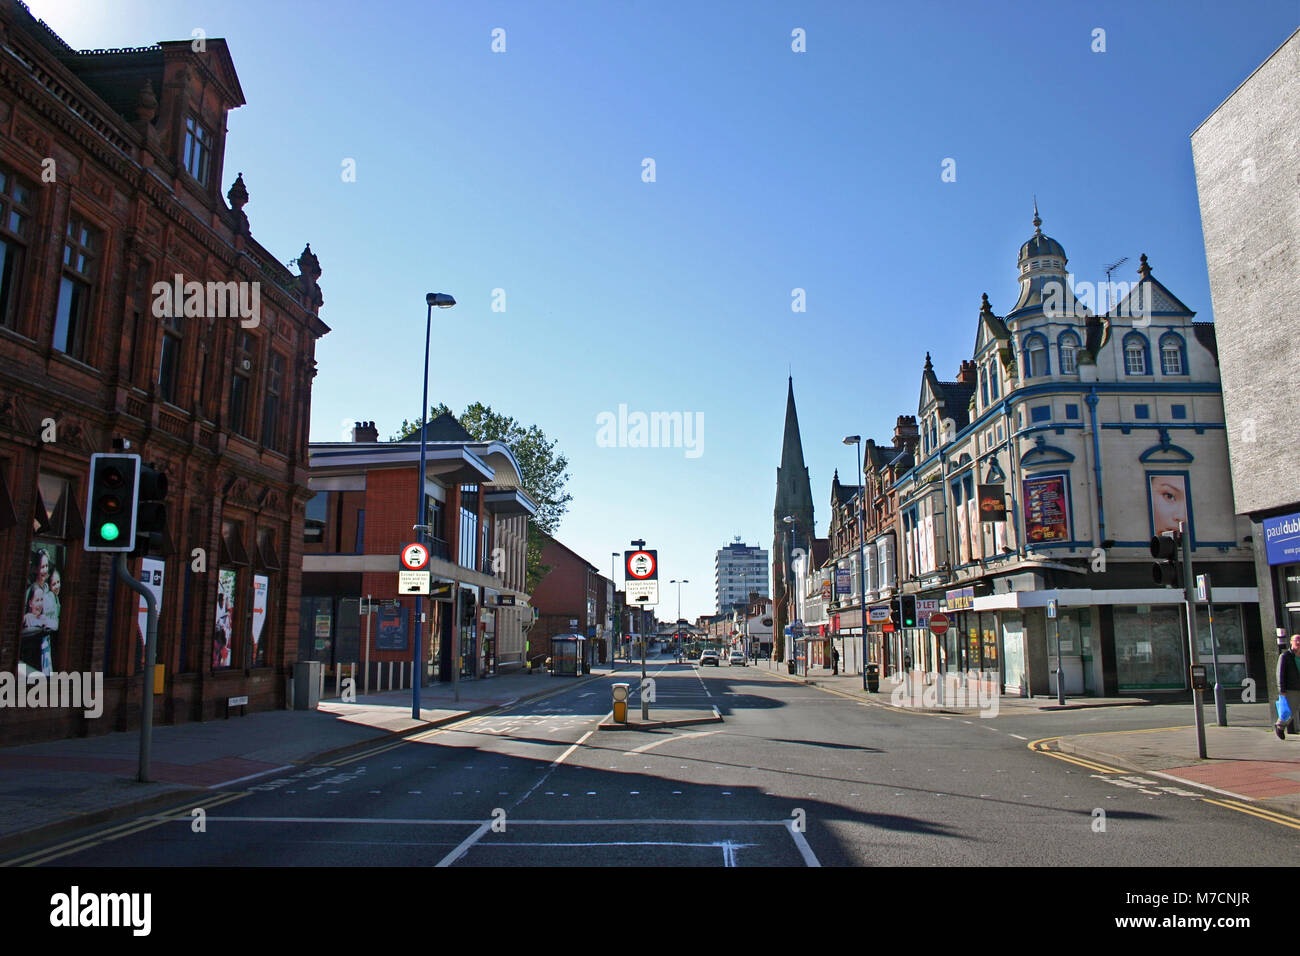 High Street, West Bromwich - Stock Image